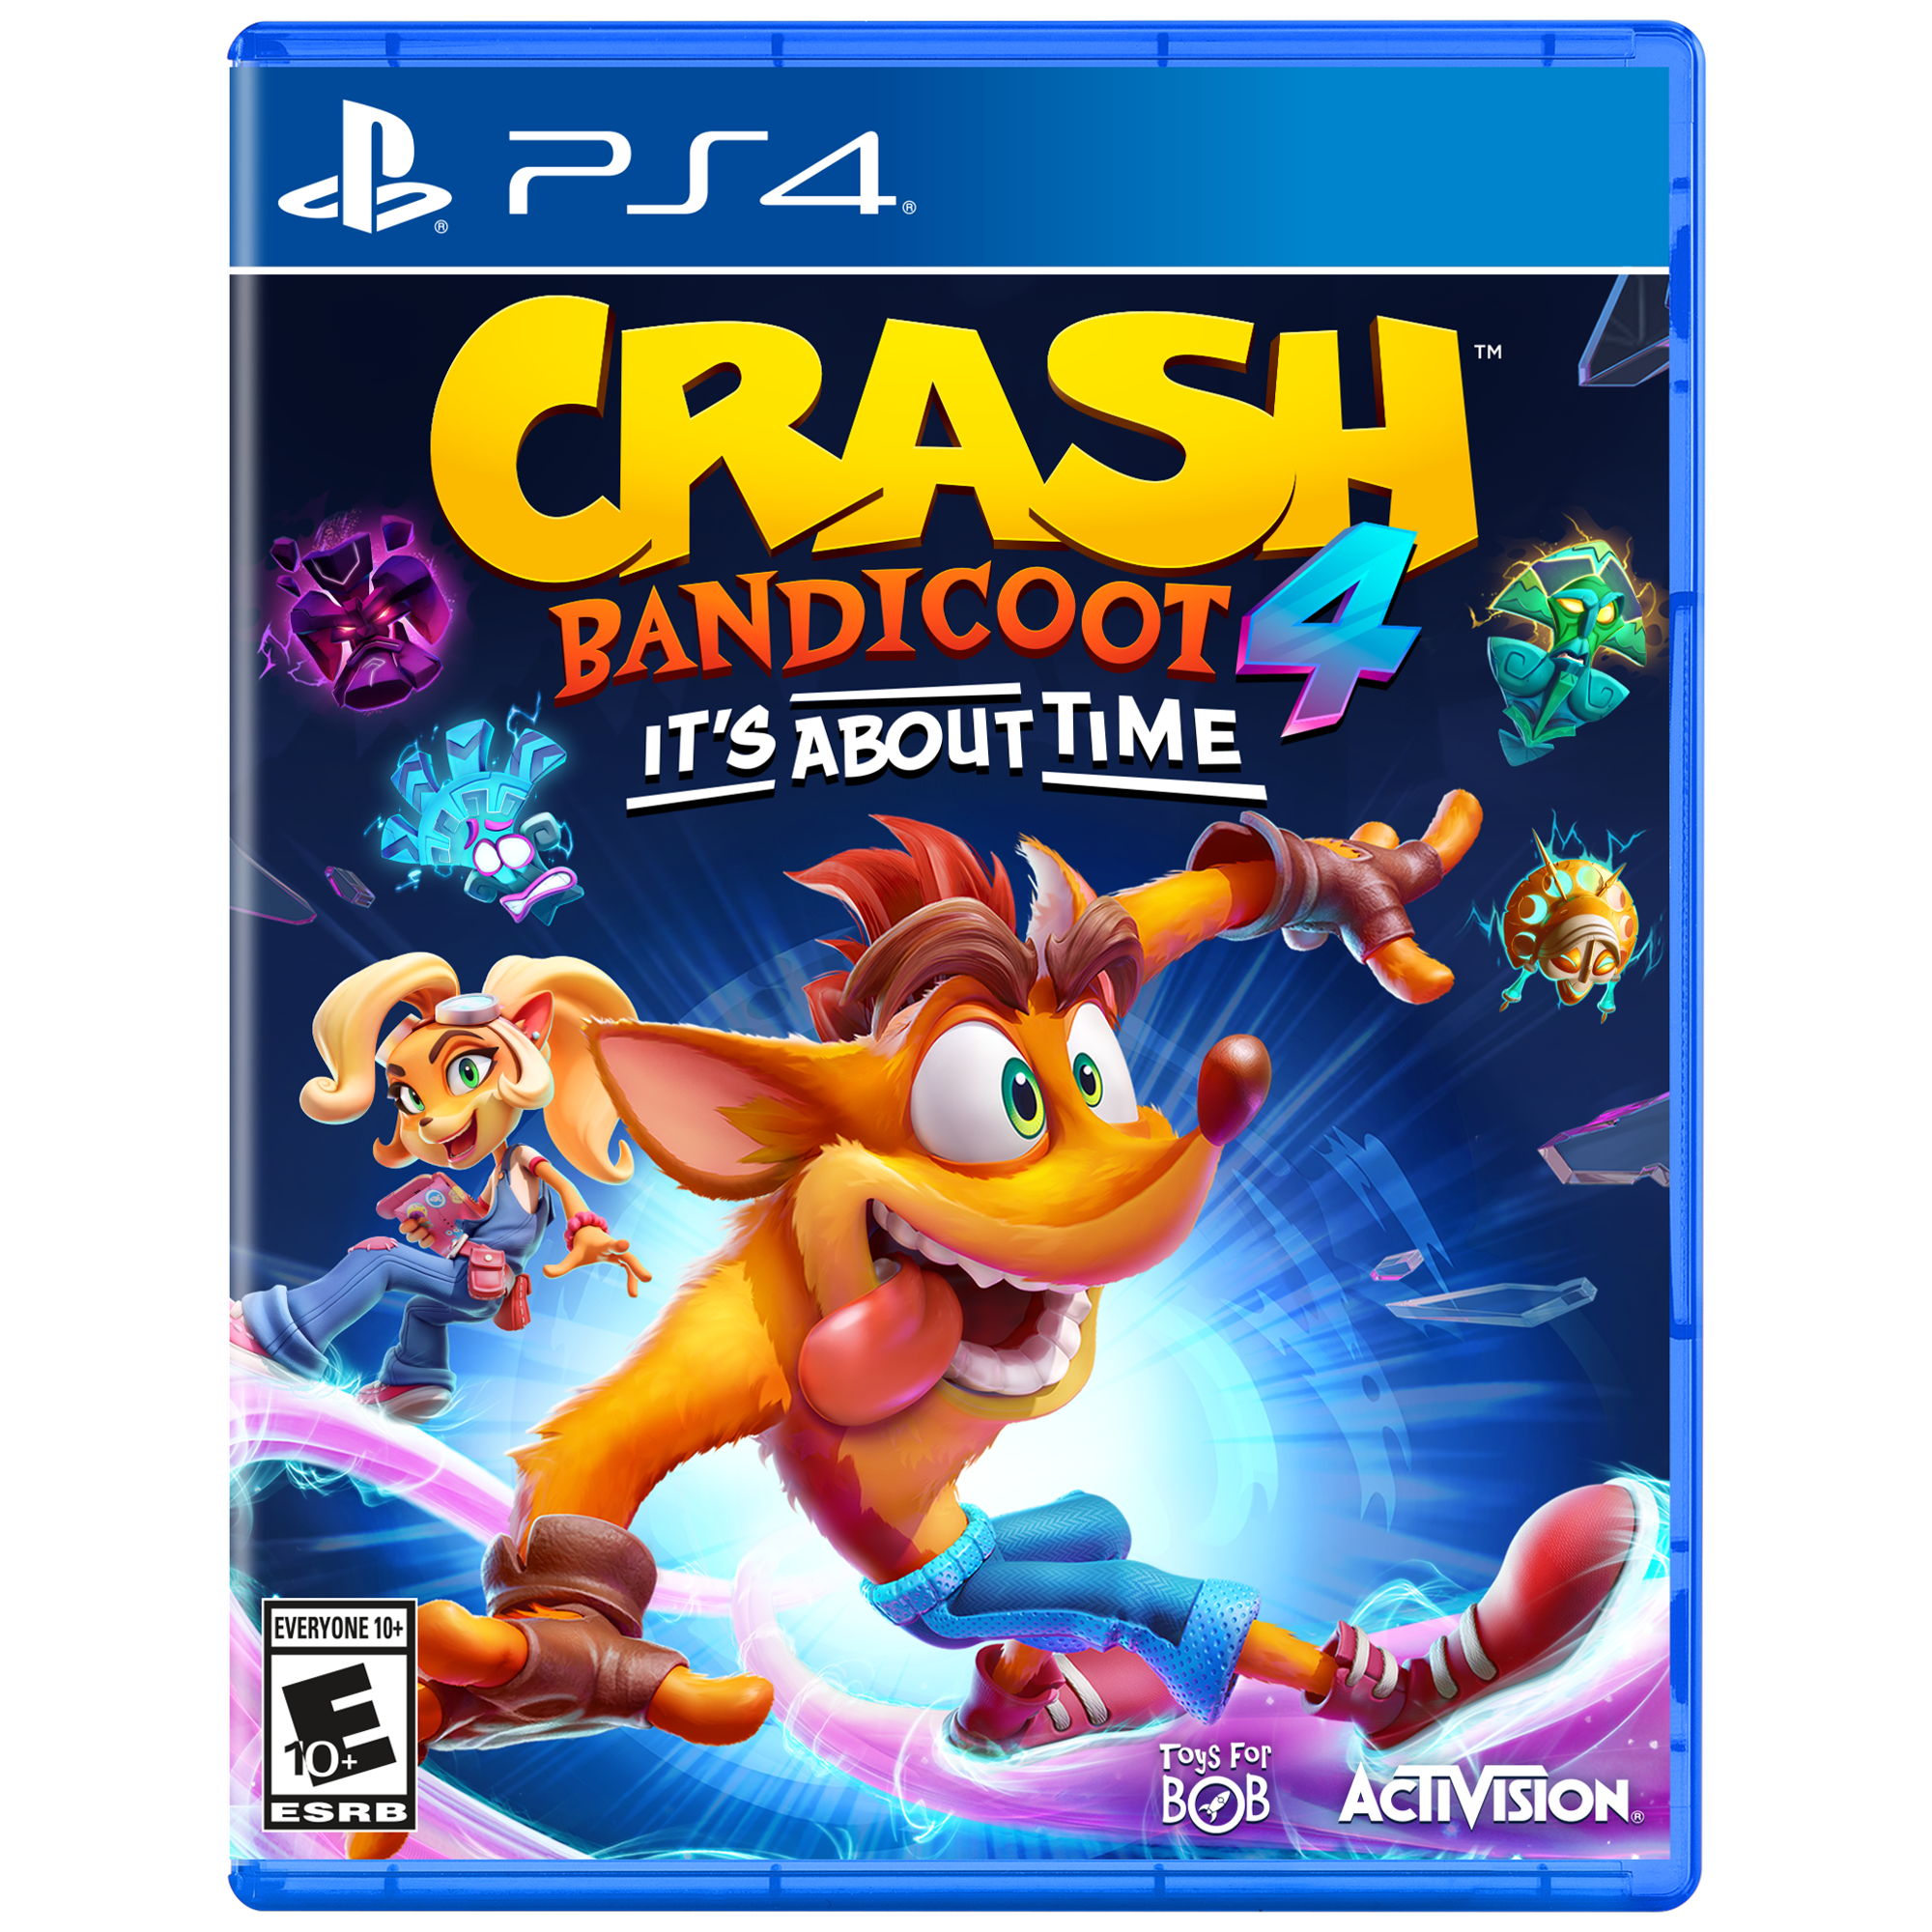 Crash Bandicoot 4 It S About Time Activision Playstation 4 Walmart Com Crash Bandicoot Bandicoot Xbox One Games